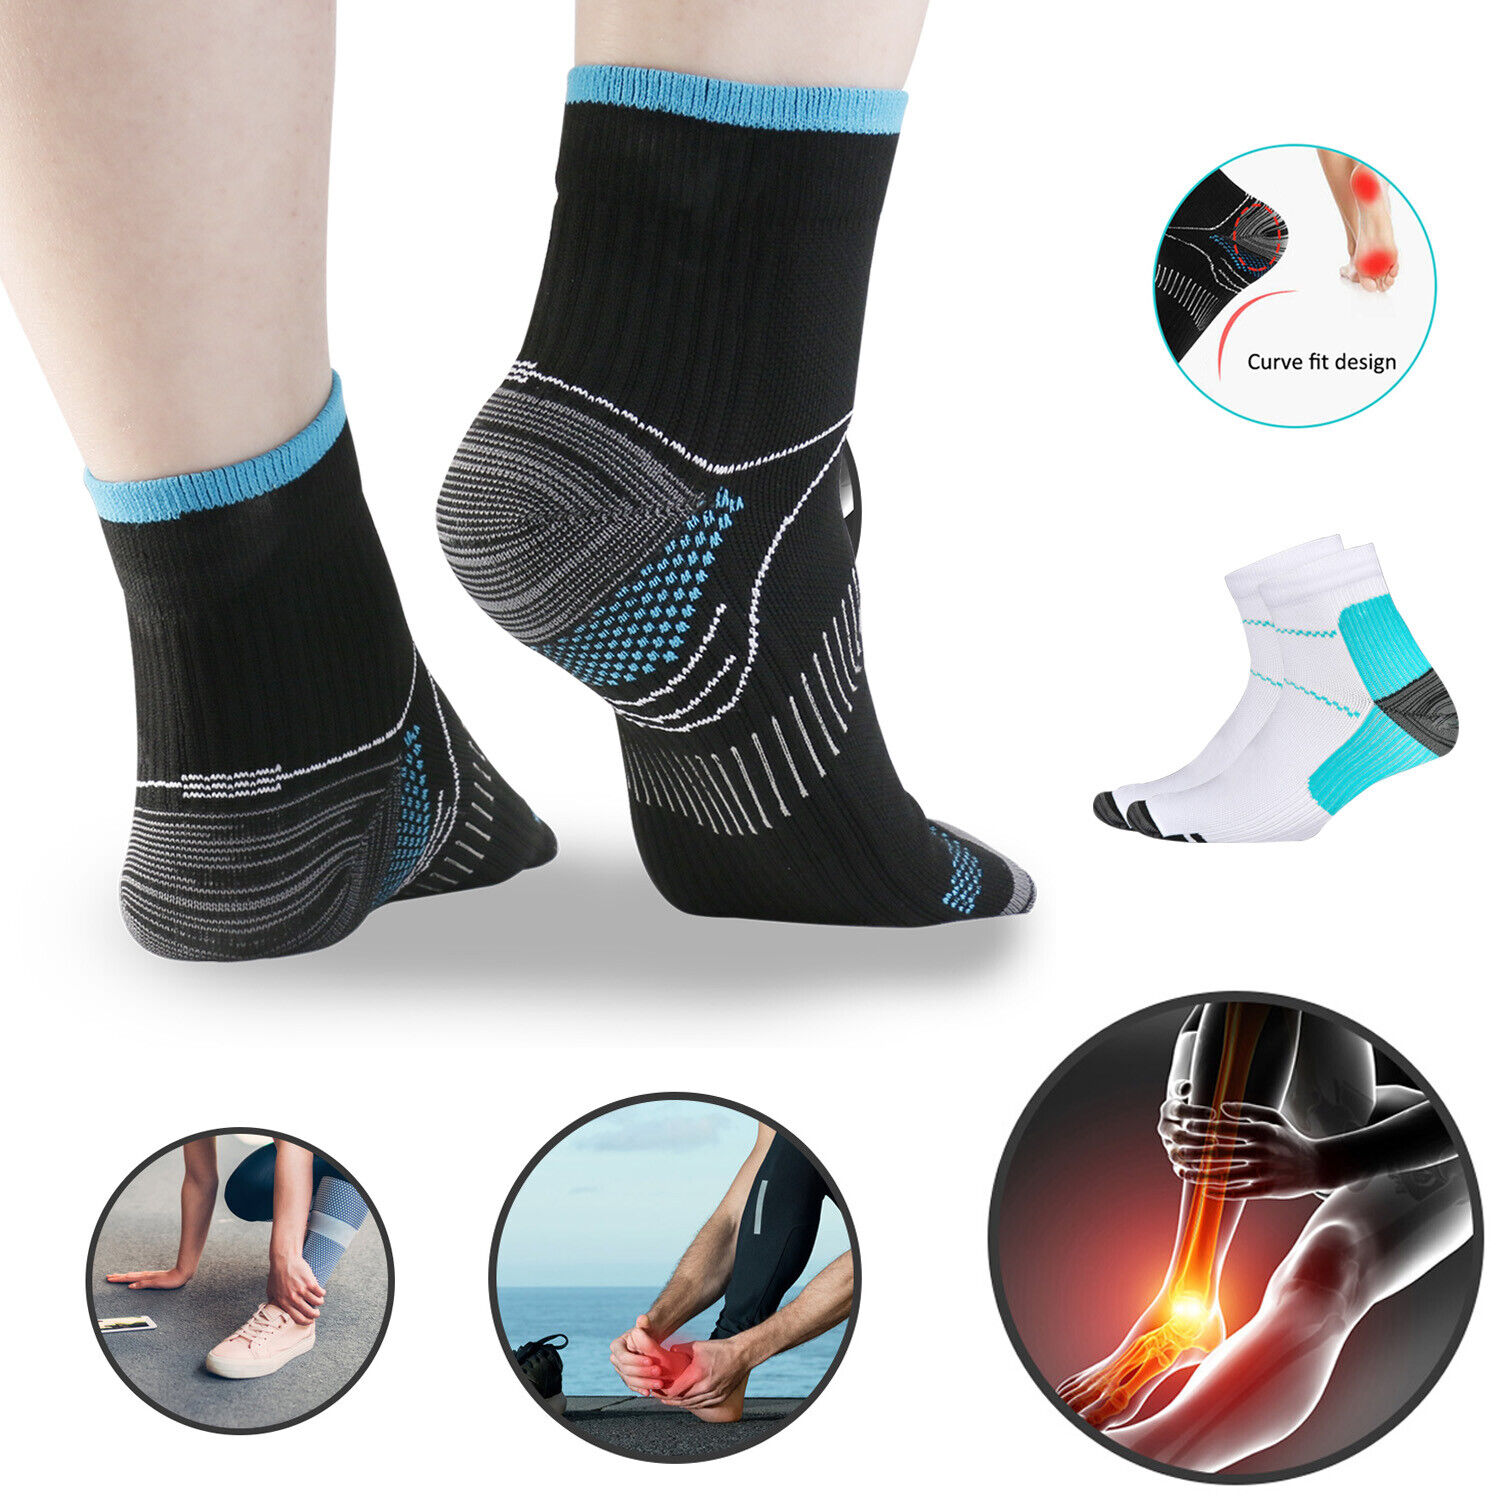 1 or 5 Pair Plantar Fasciitis Arch Ankle Support Compression Socks Sport Running Health & Beauty